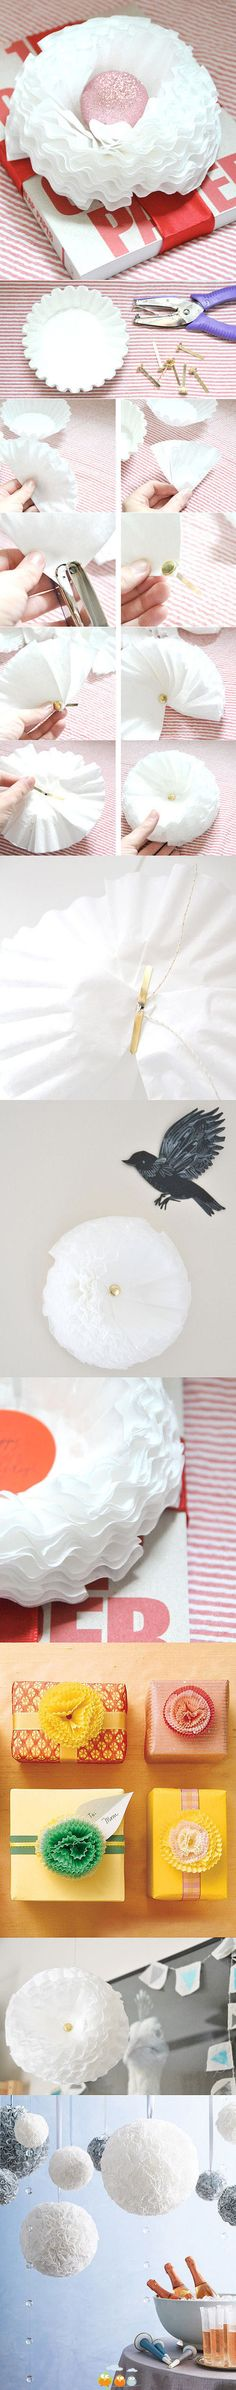 cute gift wrap idea - coffee filter flower